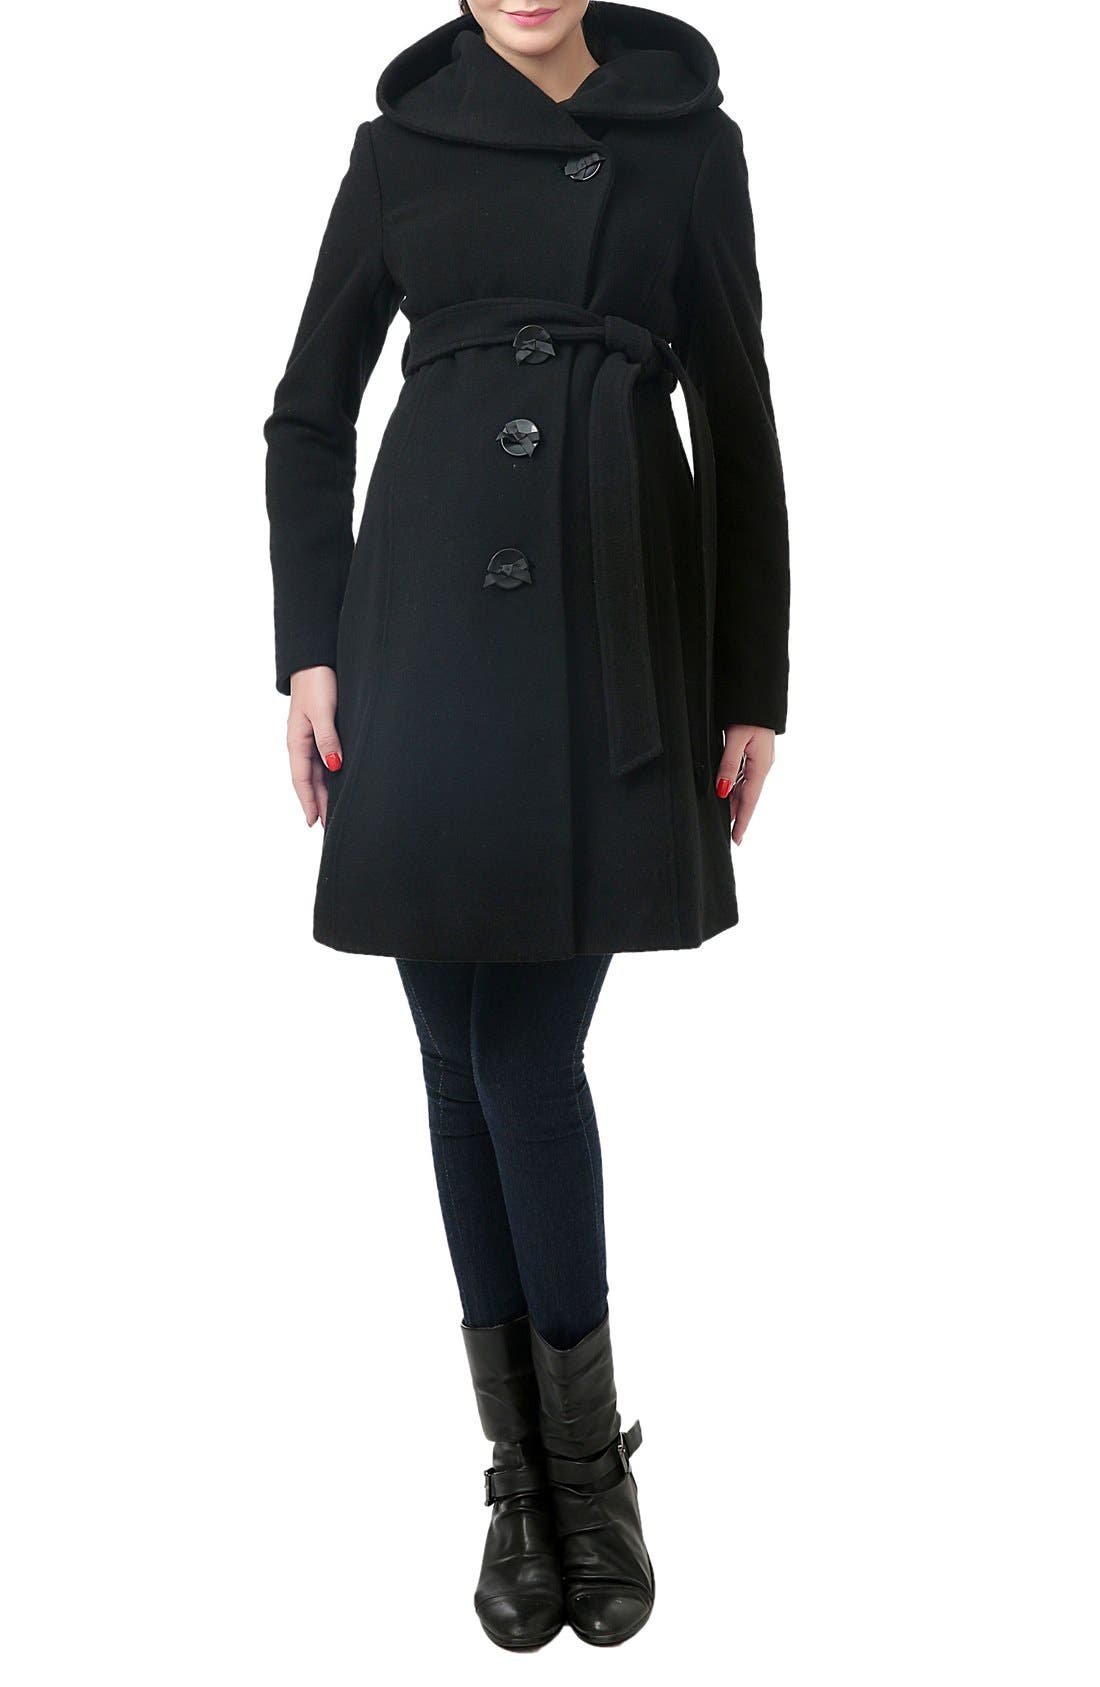 KIMI AND KAI,                             'Lora' Wool Blend Maternity Coat,                             Main thumbnail 1, color,                             BLACK